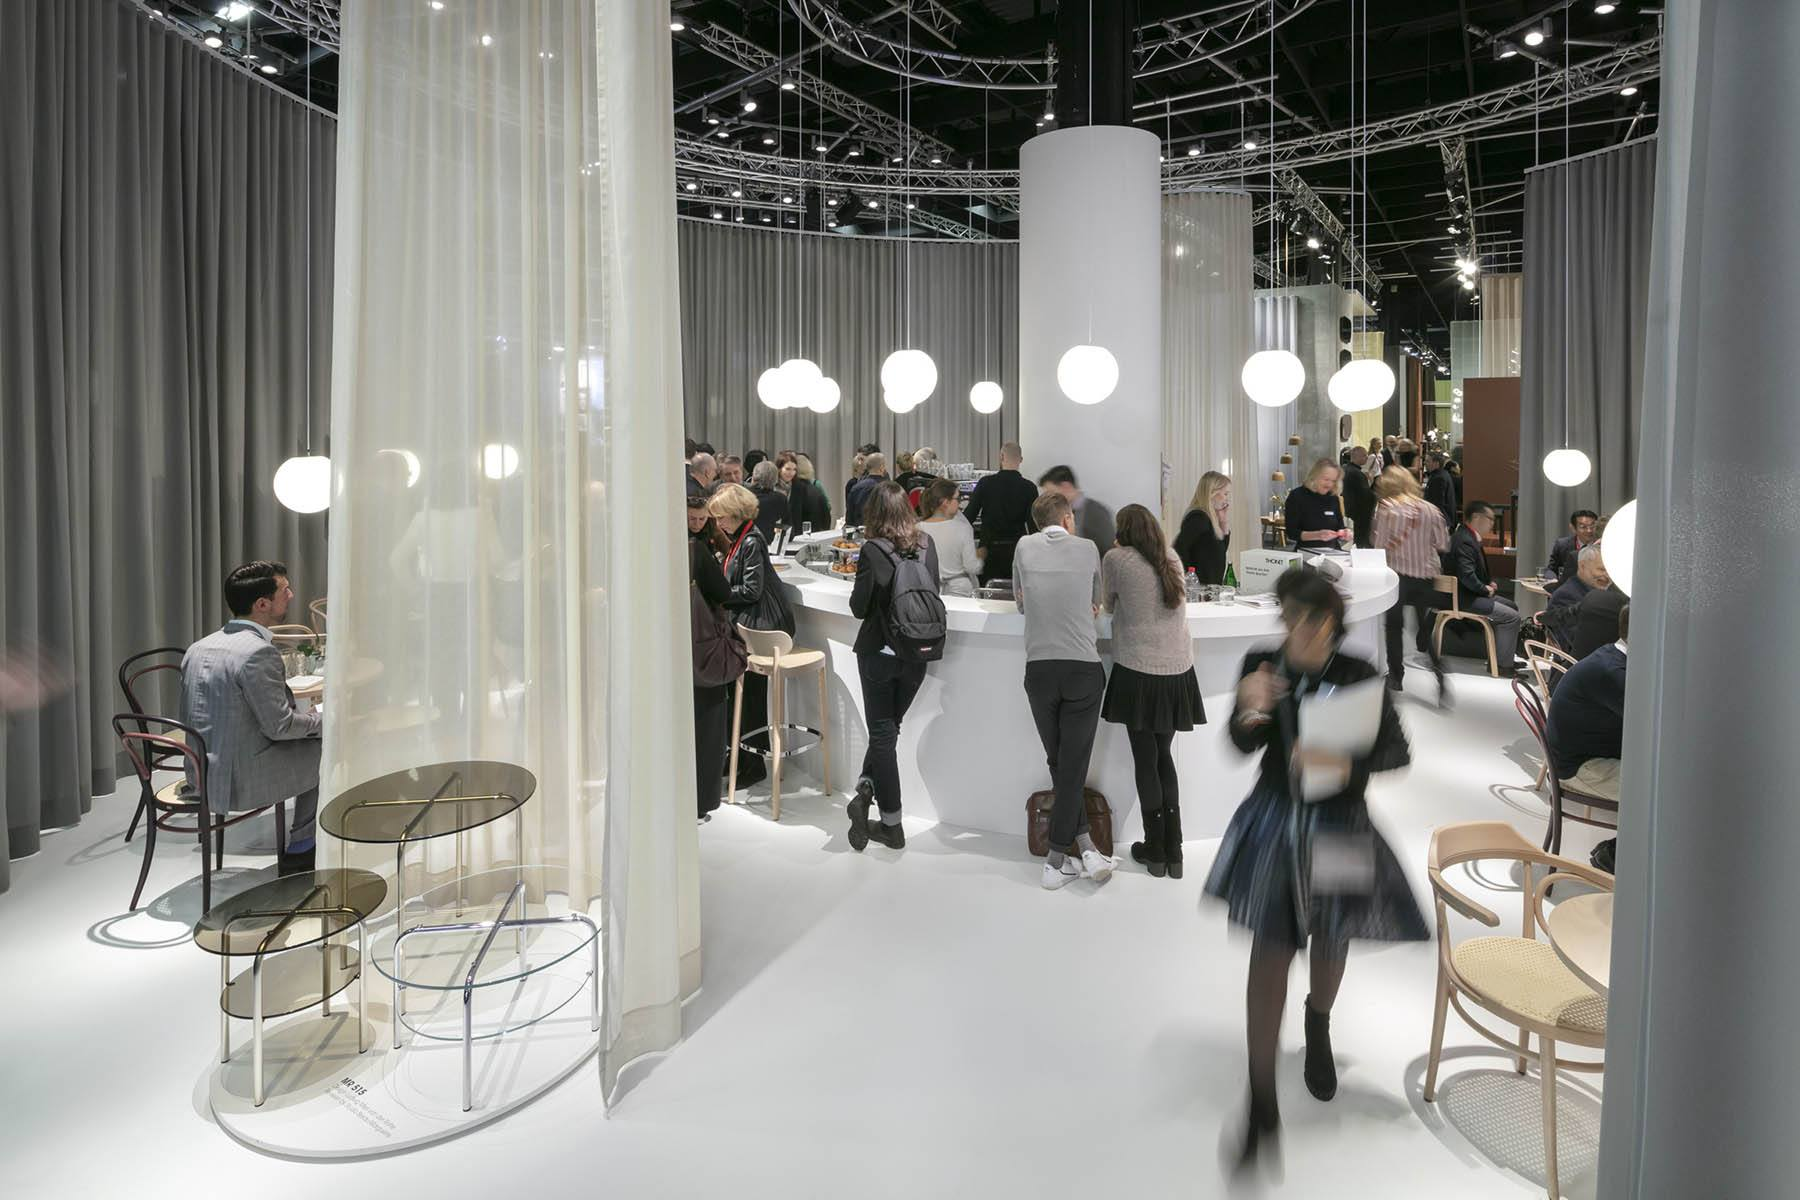 Stand: Thonet, Halle 3.2, Pure Editions